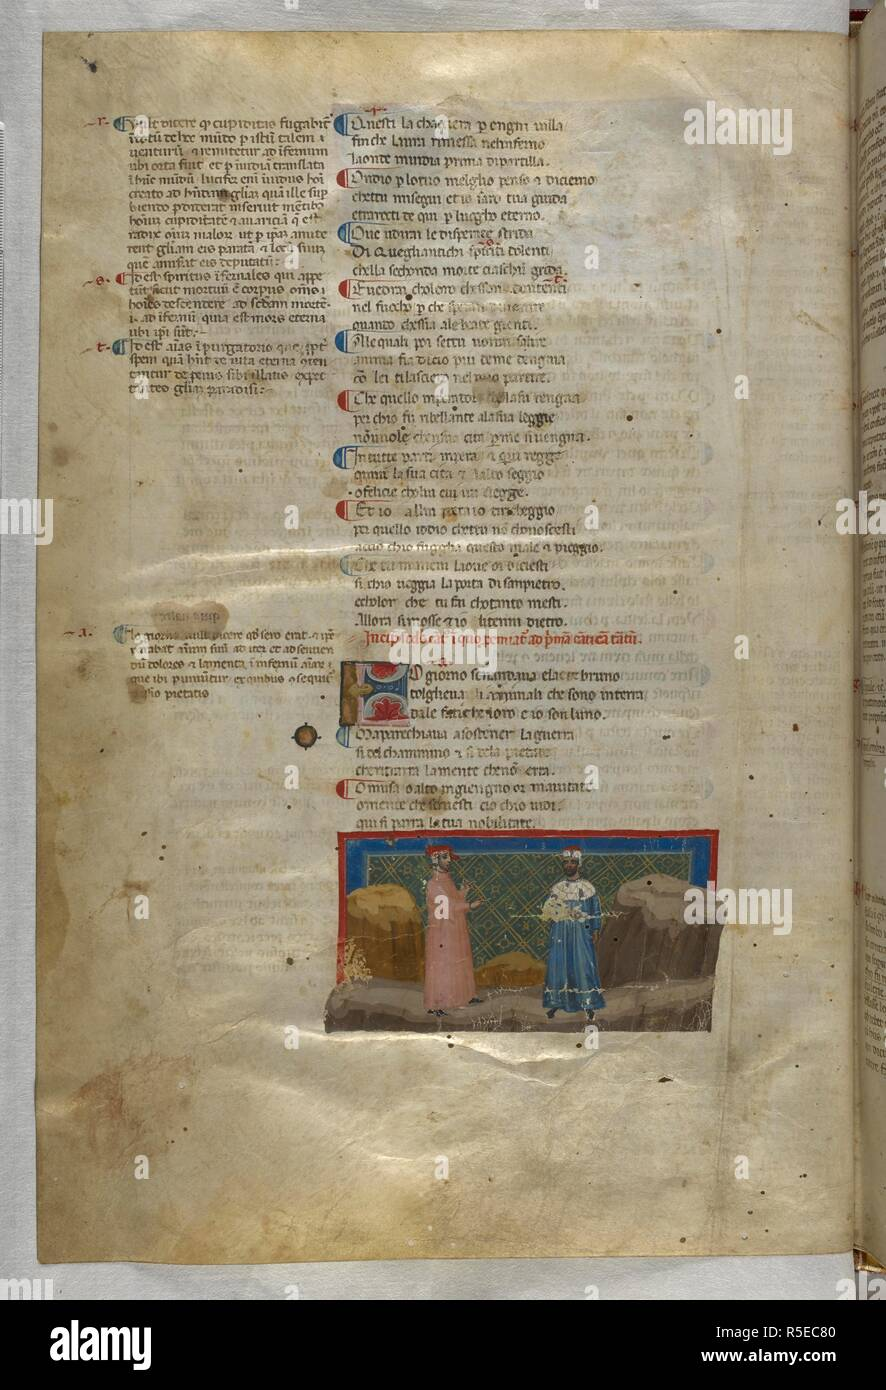 Inferno: Virgil explains to Dante how he has been asked to guide him. Dante Alighieri, Divina Commedia ( The Divine Comedy ), with a commentary in Latin. 1st half of the 14th century. Source: Egerton 943, f.4v. Language: Italian, Latin. - Stock Image